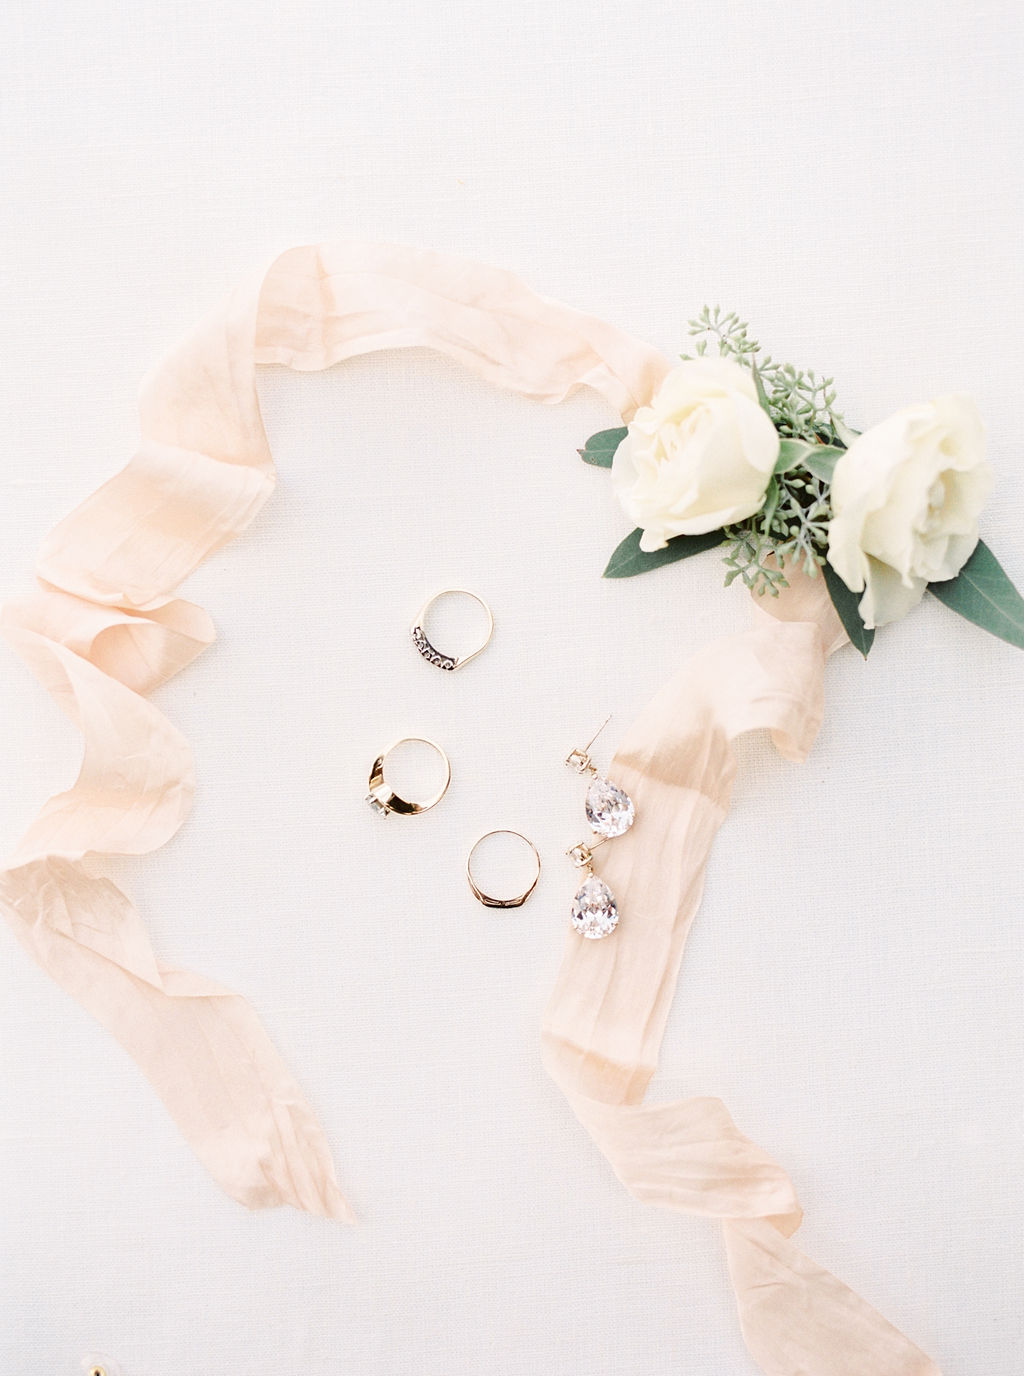 Bridalbliss.com | Columbia Gorge Wedding | Oregon Event Planning and Design | Amanda K Photography